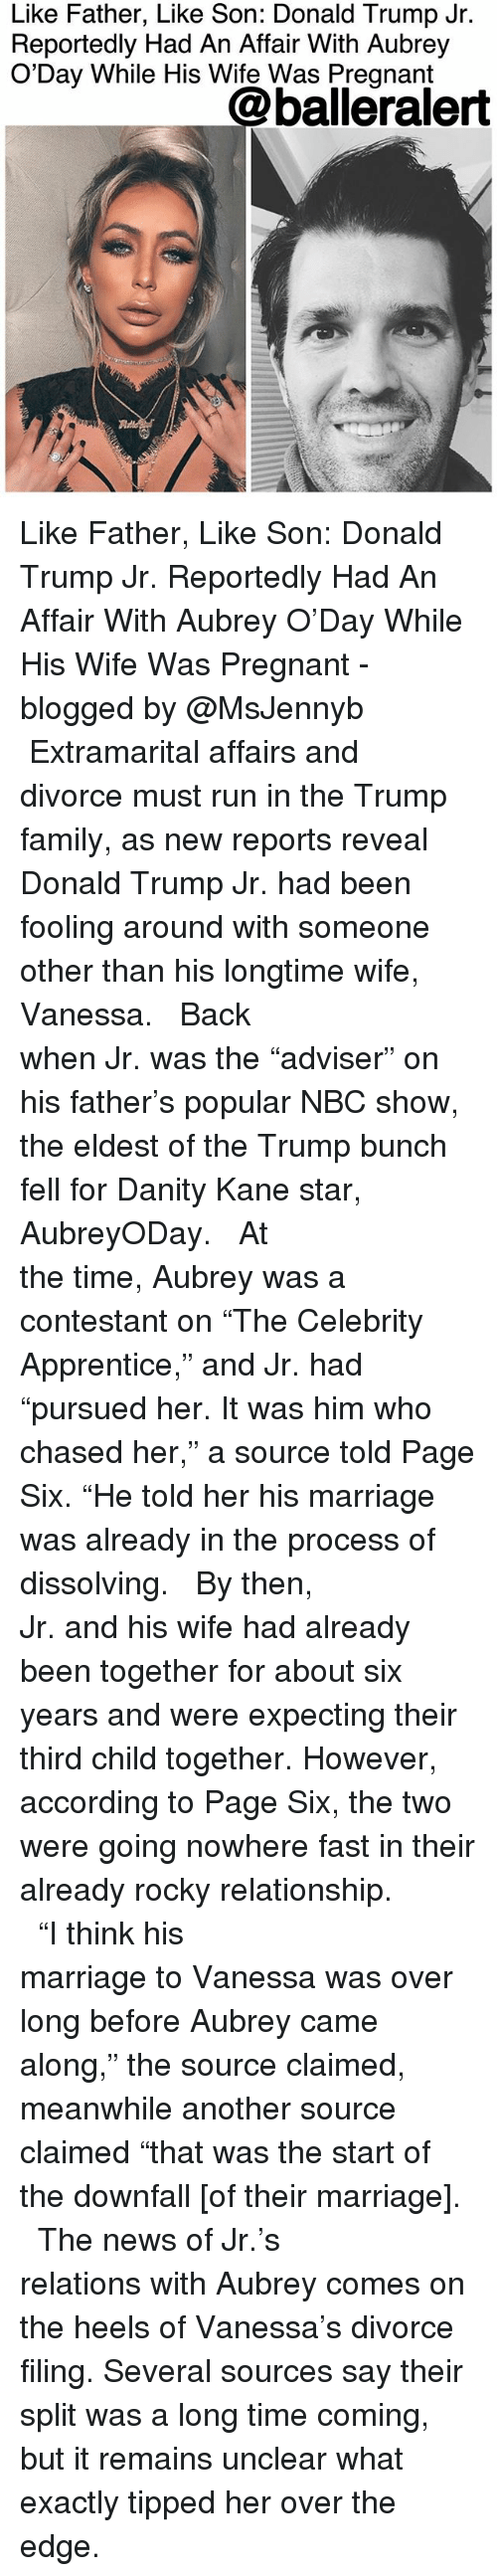 """Donald Trump, Family, and Marriage: Like Father, Like Son: Donald Trump Jr.  Reportedly Had An Affair With Aubrey  O'Day While His Wife Was Pregnant  @balleralert Like Father, Like Son: Donald Trump Jr. Reportedly Had An Affair With Aubrey O'Day While His Wife Was Pregnant - blogged by @MsJennyb ⠀⠀⠀⠀⠀⠀⠀⠀⠀ ⠀⠀⠀⠀⠀⠀⠀⠀⠀ Extramarital affairs and divorce must run in the Trump family, as new reports reveal Donald Trump Jr. had been fooling around with someone other than his longtime wife, Vanessa. ⠀⠀⠀⠀⠀⠀⠀⠀⠀ ⠀⠀⠀⠀⠀⠀⠀⠀⠀ Back when Jr. was the """"adviser"""" on his father's popular NBC show, the eldest of the Trump bunch fell for Danity Kane star, AubreyODay. ⠀⠀⠀⠀⠀⠀⠀⠀⠀ ⠀⠀⠀⠀⠀⠀⠀⠀⠀ At the time, Aubrey was a contestant on """"The Celebrity Apprentice,"""" and Jr. had """"pursued her. It was him who chased her,"""" a source told Page Six. """"He told her his marriage was already in the process of dissolving. ⠀⠀⠀⠀⠀⠀⠀⠀⠀ ⠀⠀⠀⠀⠀⠀⠀⠀⠀ By then, Jr. and his wife had already been together for about six years and were expecting their third child together. However, according to Page Six, the two were going nowhere fast in their already rocky relationship. ⠀⠀⠀⠀⠀⠀⠀⠀⠀ ⠀⠀⠀⠀⠀⠀⠀⠀⠀ """"I think his marriage to Vanessa was over long before Aubrey came along,"""" the source claimed, meanwhile another source claimed """"that was the start of the downfall [of their marriage]. ⠀⠀⠀⠀⠀⠀⠀⠀⠀ ⠀⠀⠀⠀⠀⠀⠀⠀⠀ The news of Jr.'s relations with Aubrey comes on the heels of Vanessa's divorce filing. Several sources say their split was a long time coming, but it remains unclear what exactly tipped her over the edge."""